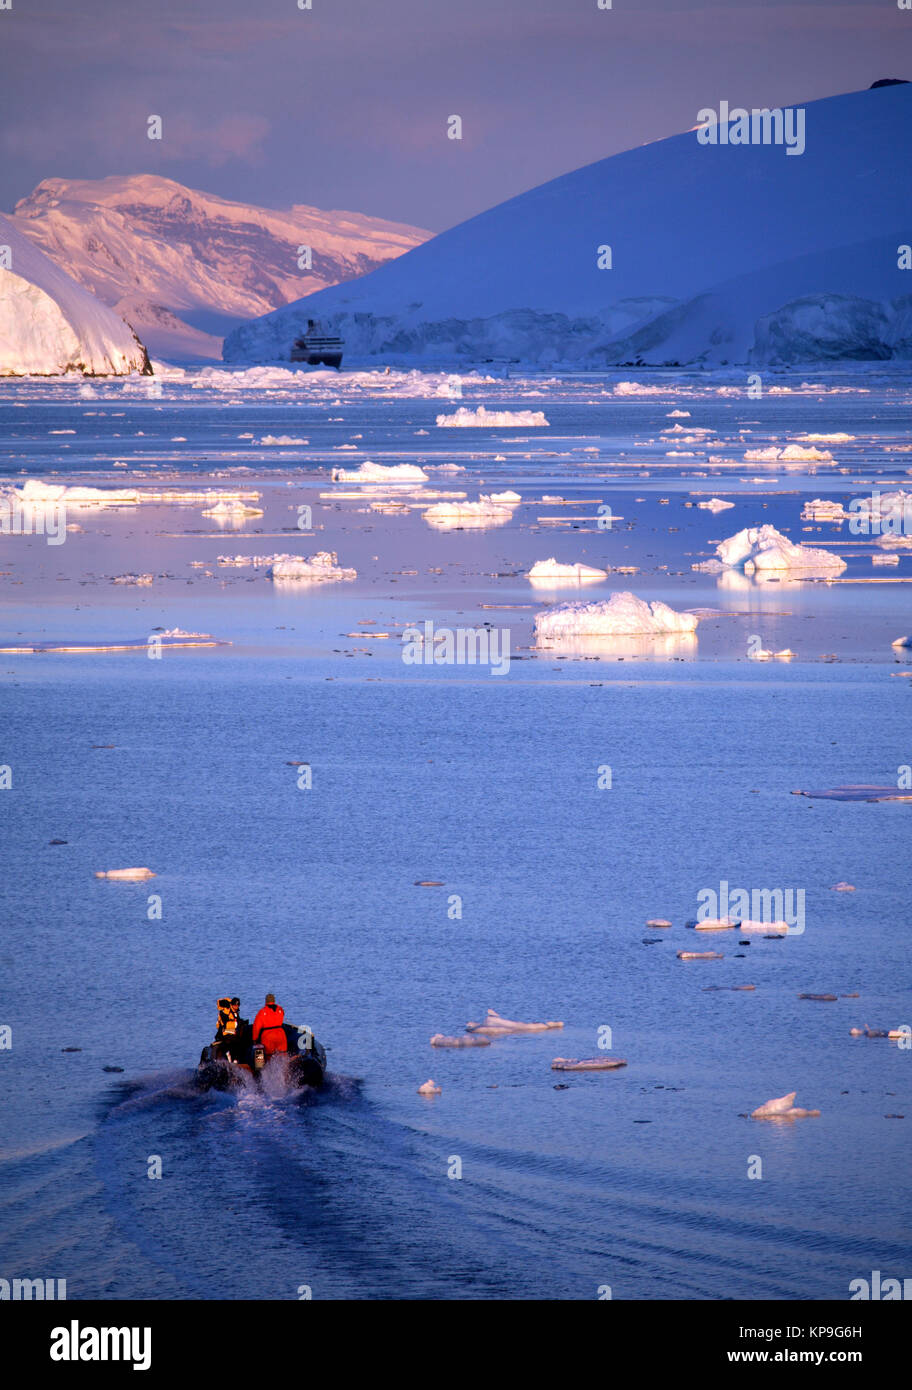 Tourist ship and zodiac in the Lamaire Channal on the Antarctic Peninsula in Antarctica. - Stock Image